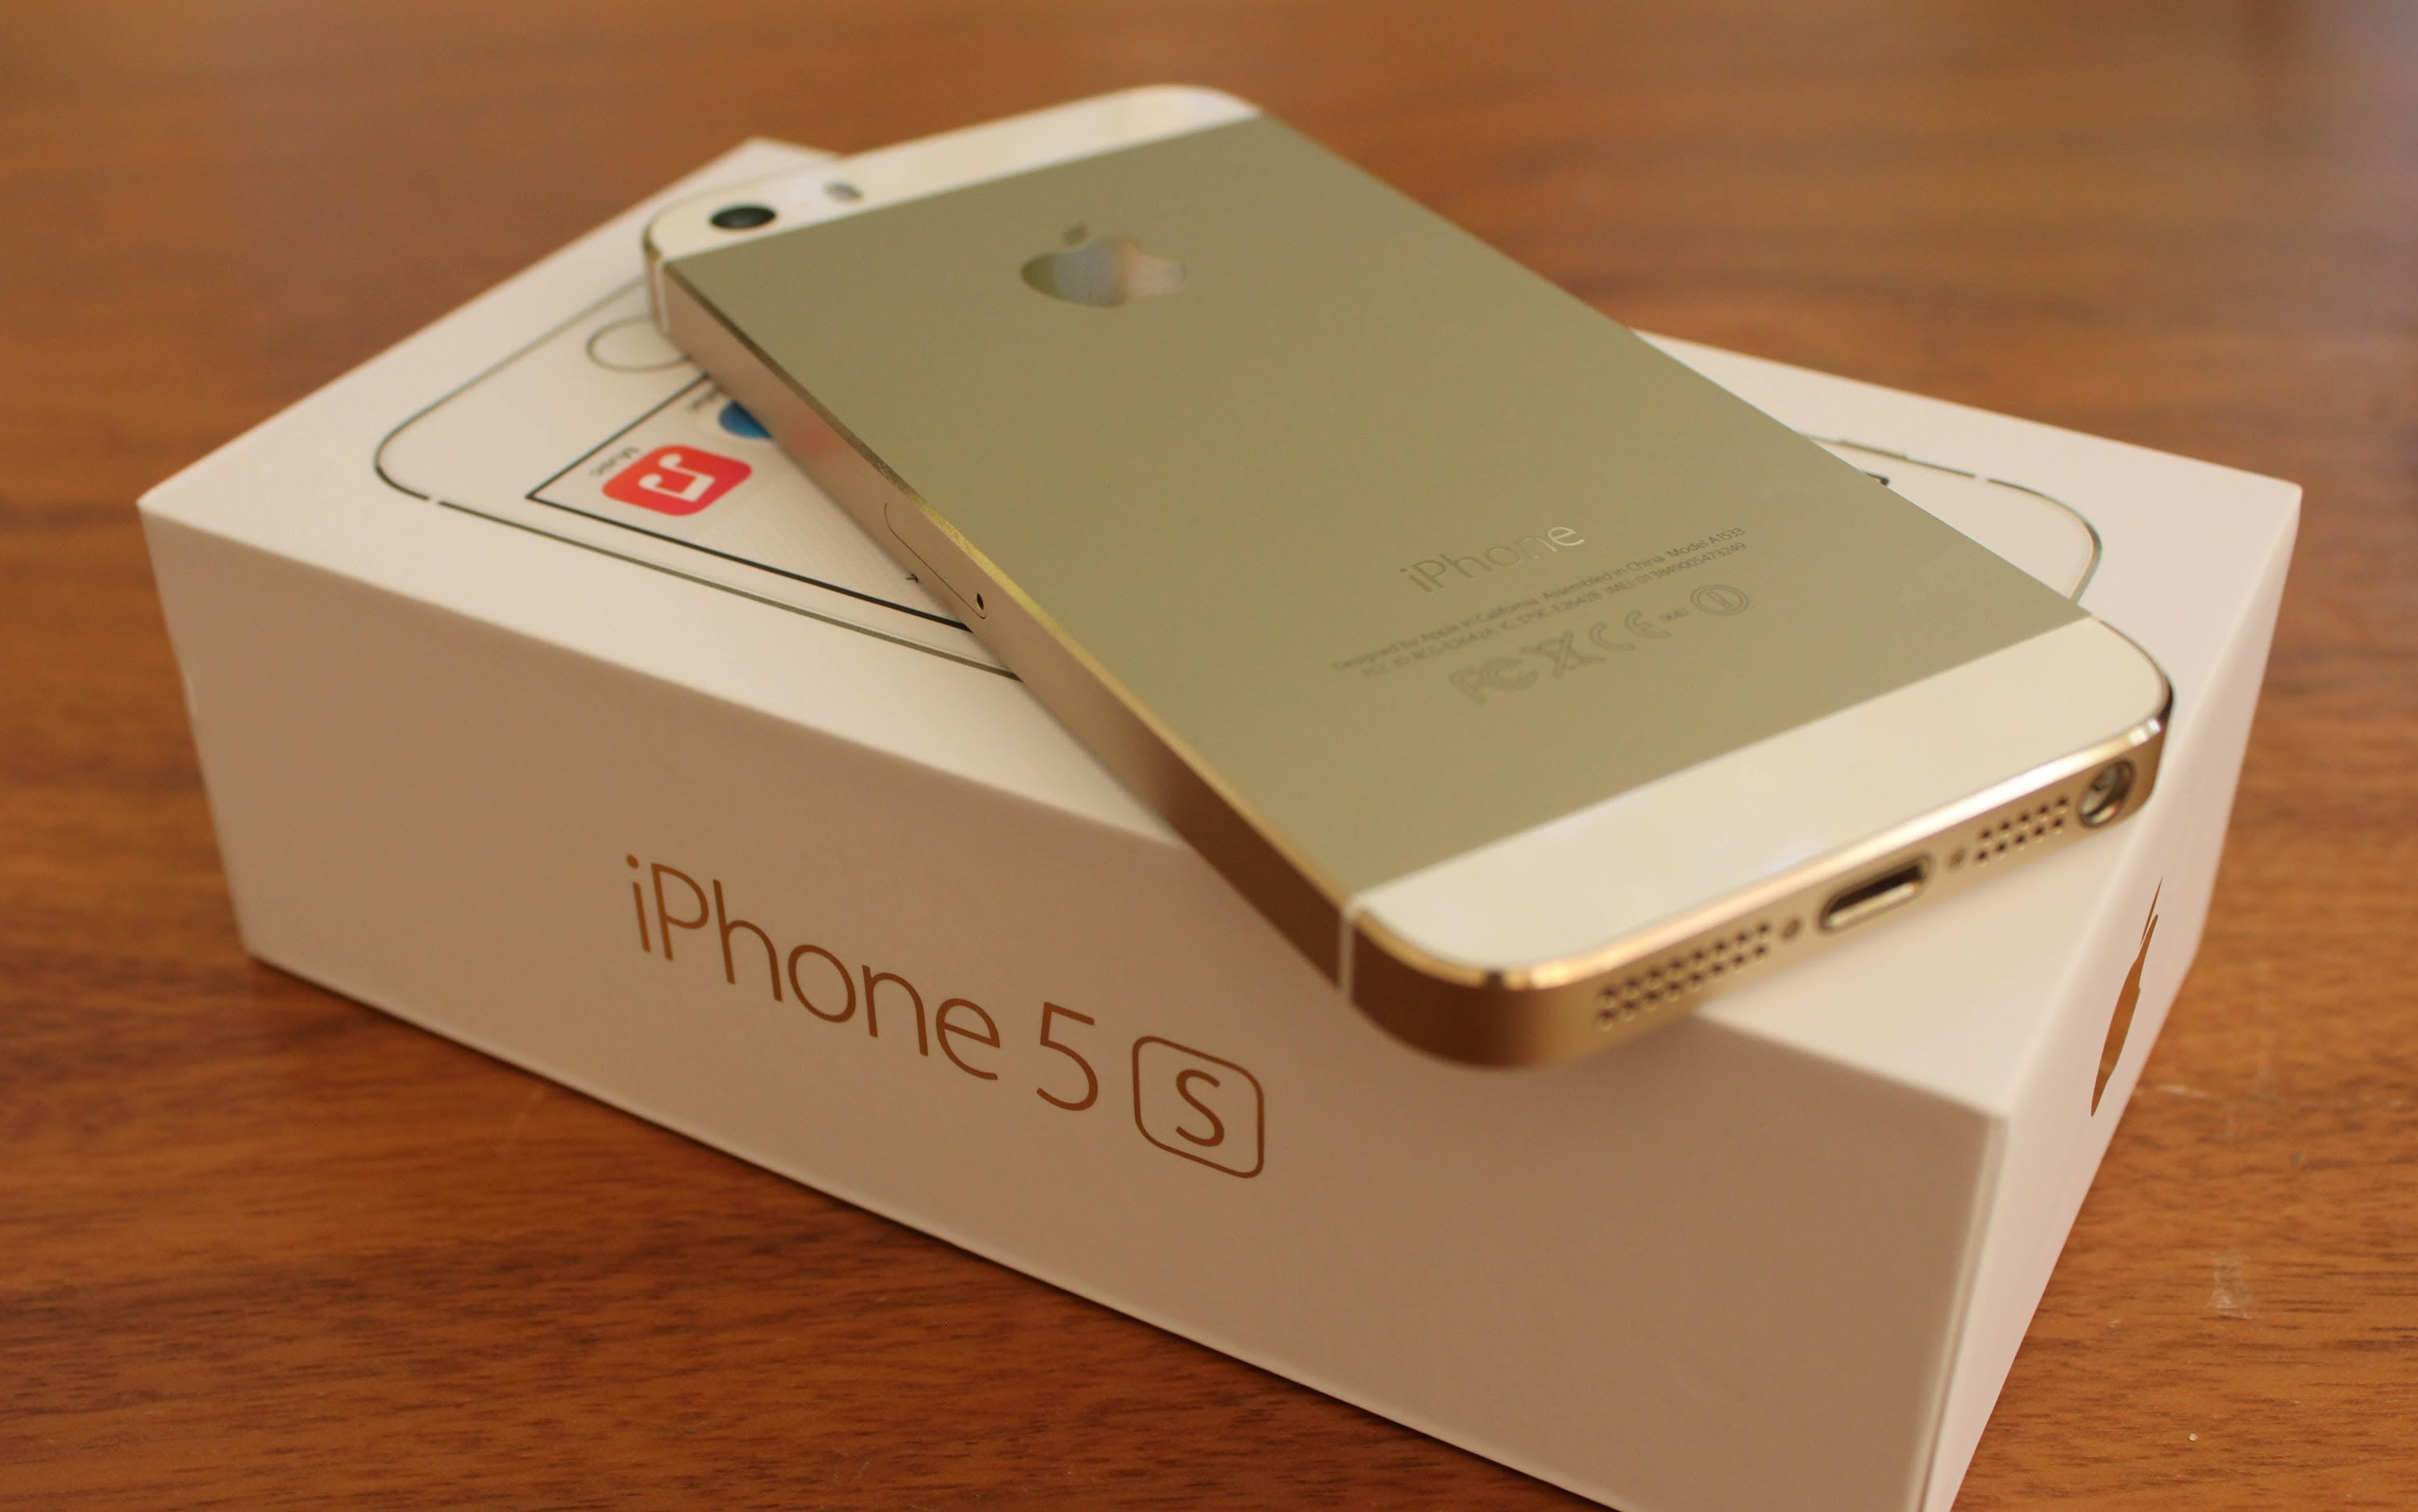 Apple Iphone 5s Will Be Available At 50 Lesser Price After 64gb Gold Se Launch